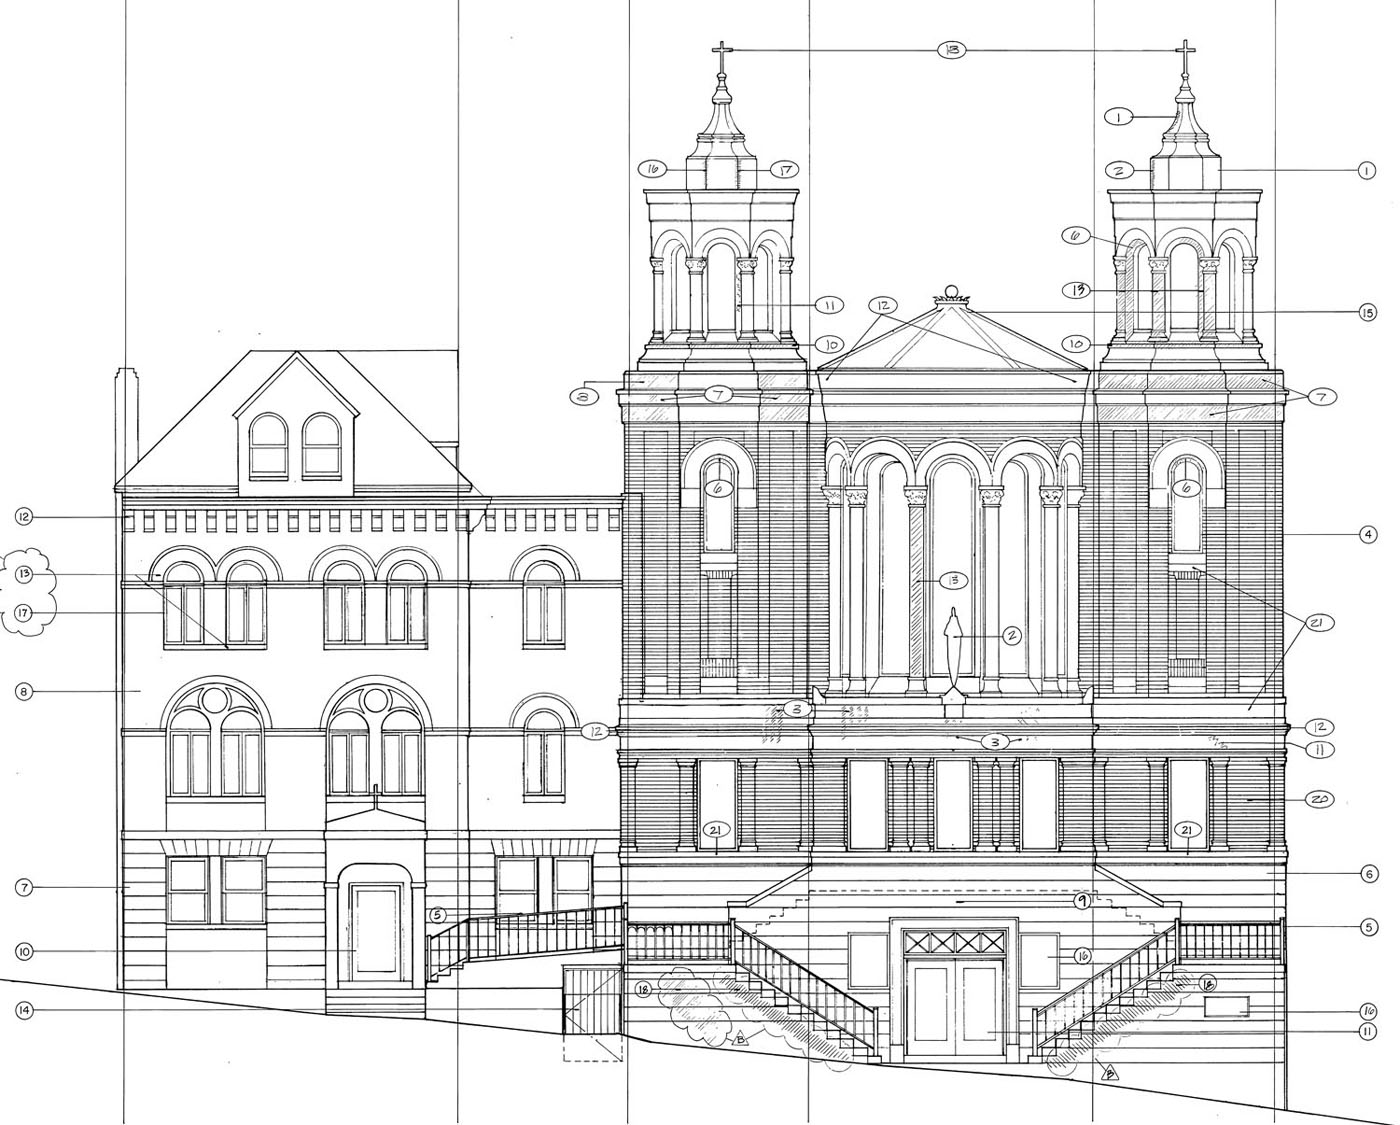 Architectural elevation drawing for Architecture elevation